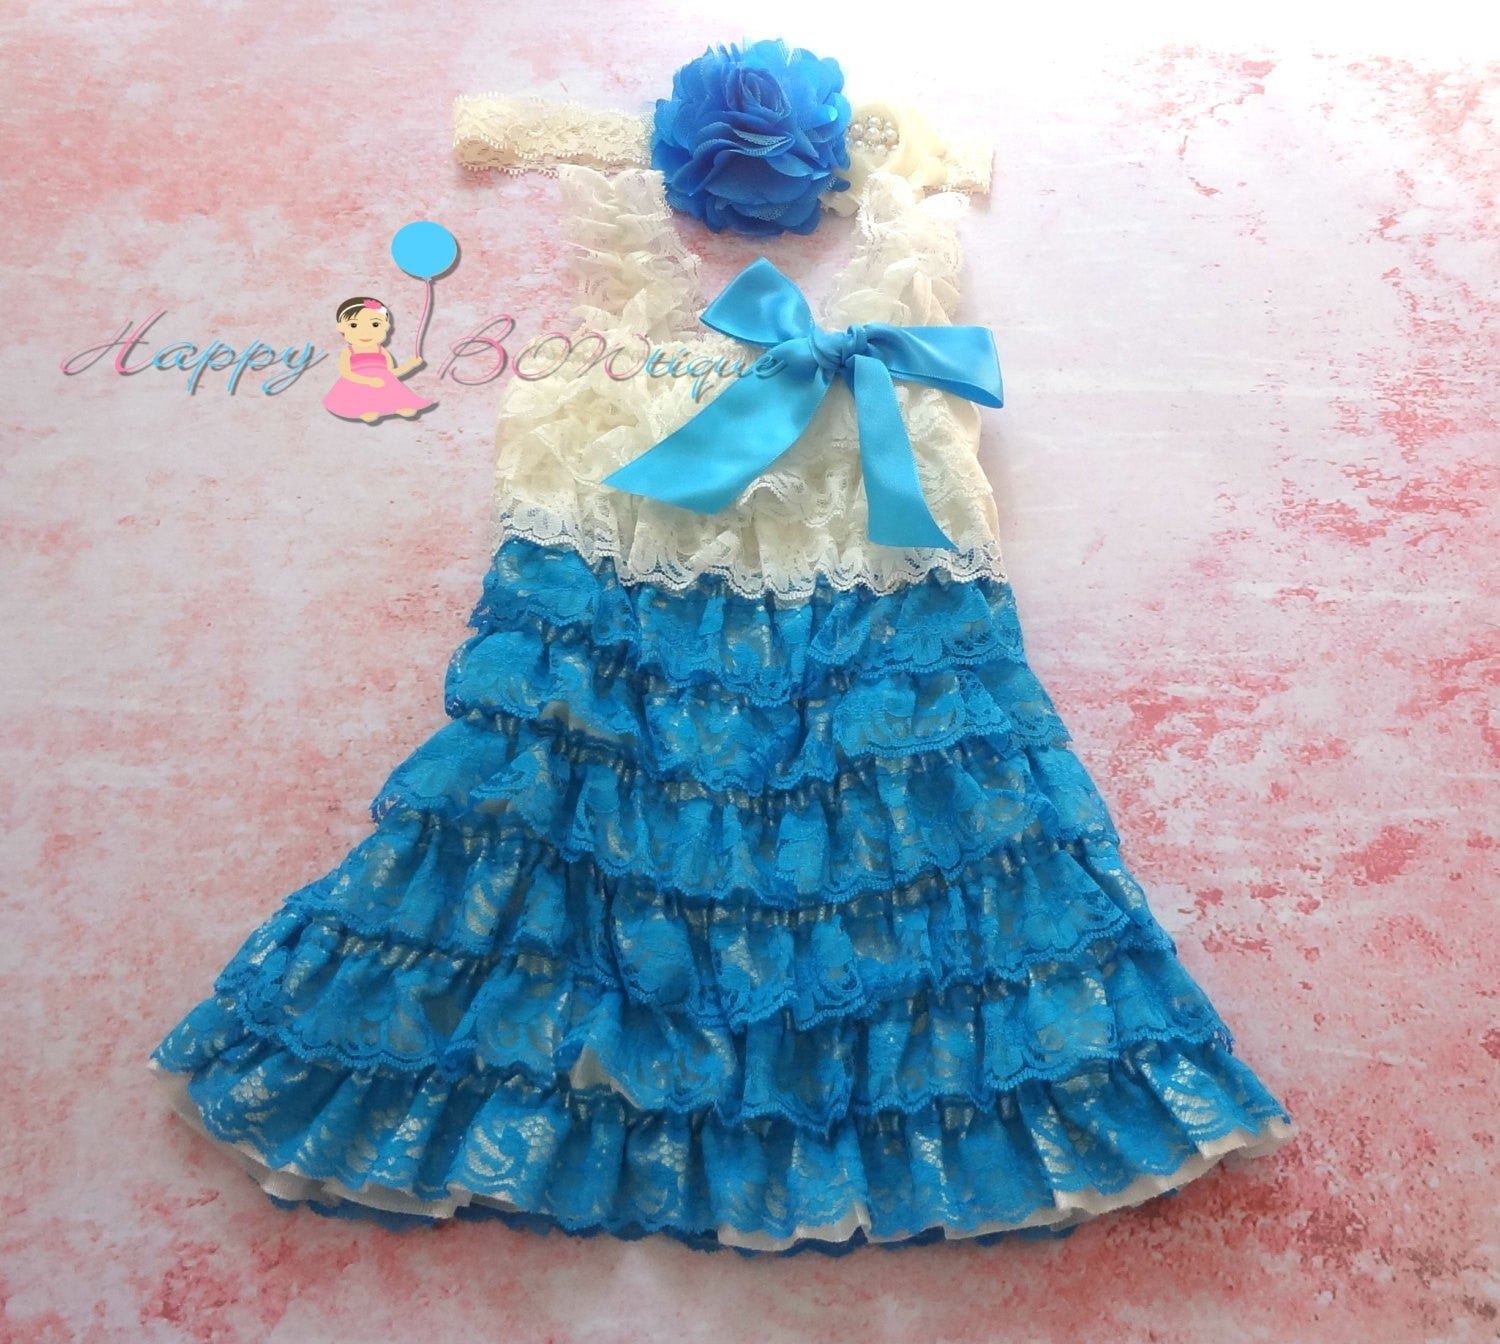 Girl's Petti Lace Dress/ Girl's Ivory Turquoise lace dress set - Happy BOWtique - children's clothing, Baby Girl clothing